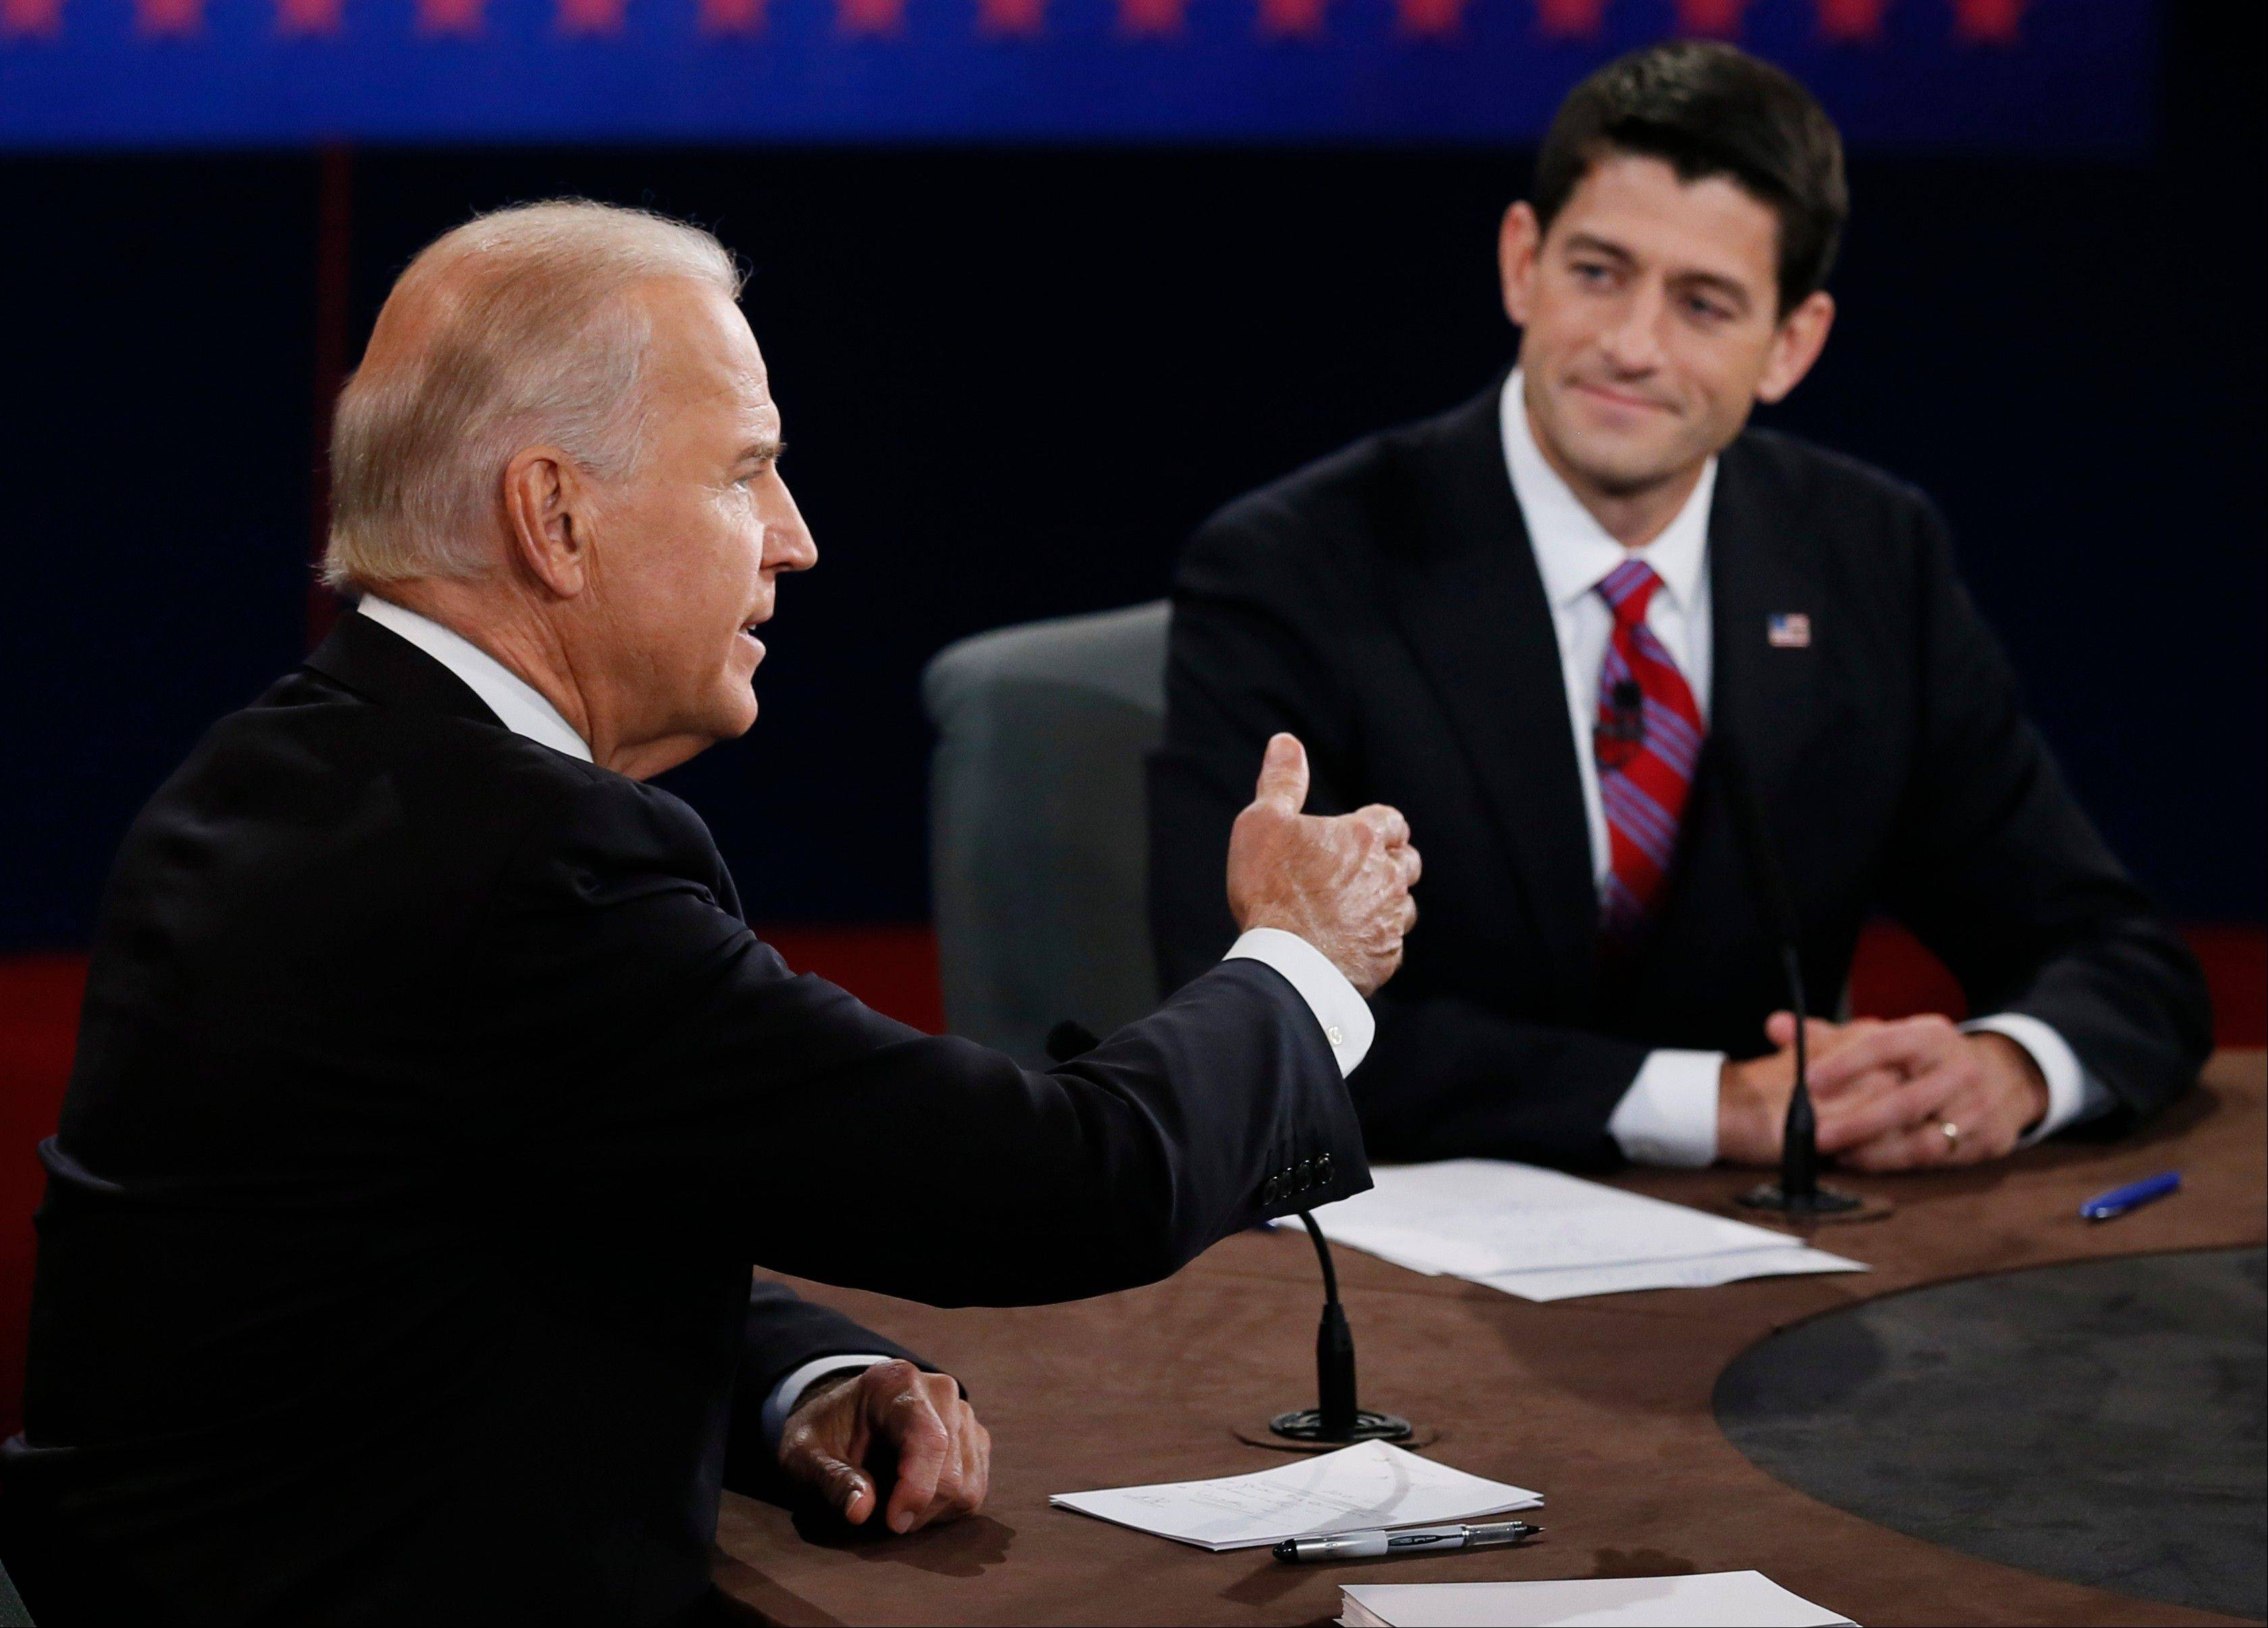 Vice President Joe Biden and Republican vice presidential nominee Rep. Paul Ryan of Wisconsin participate in the vice presidential debate.